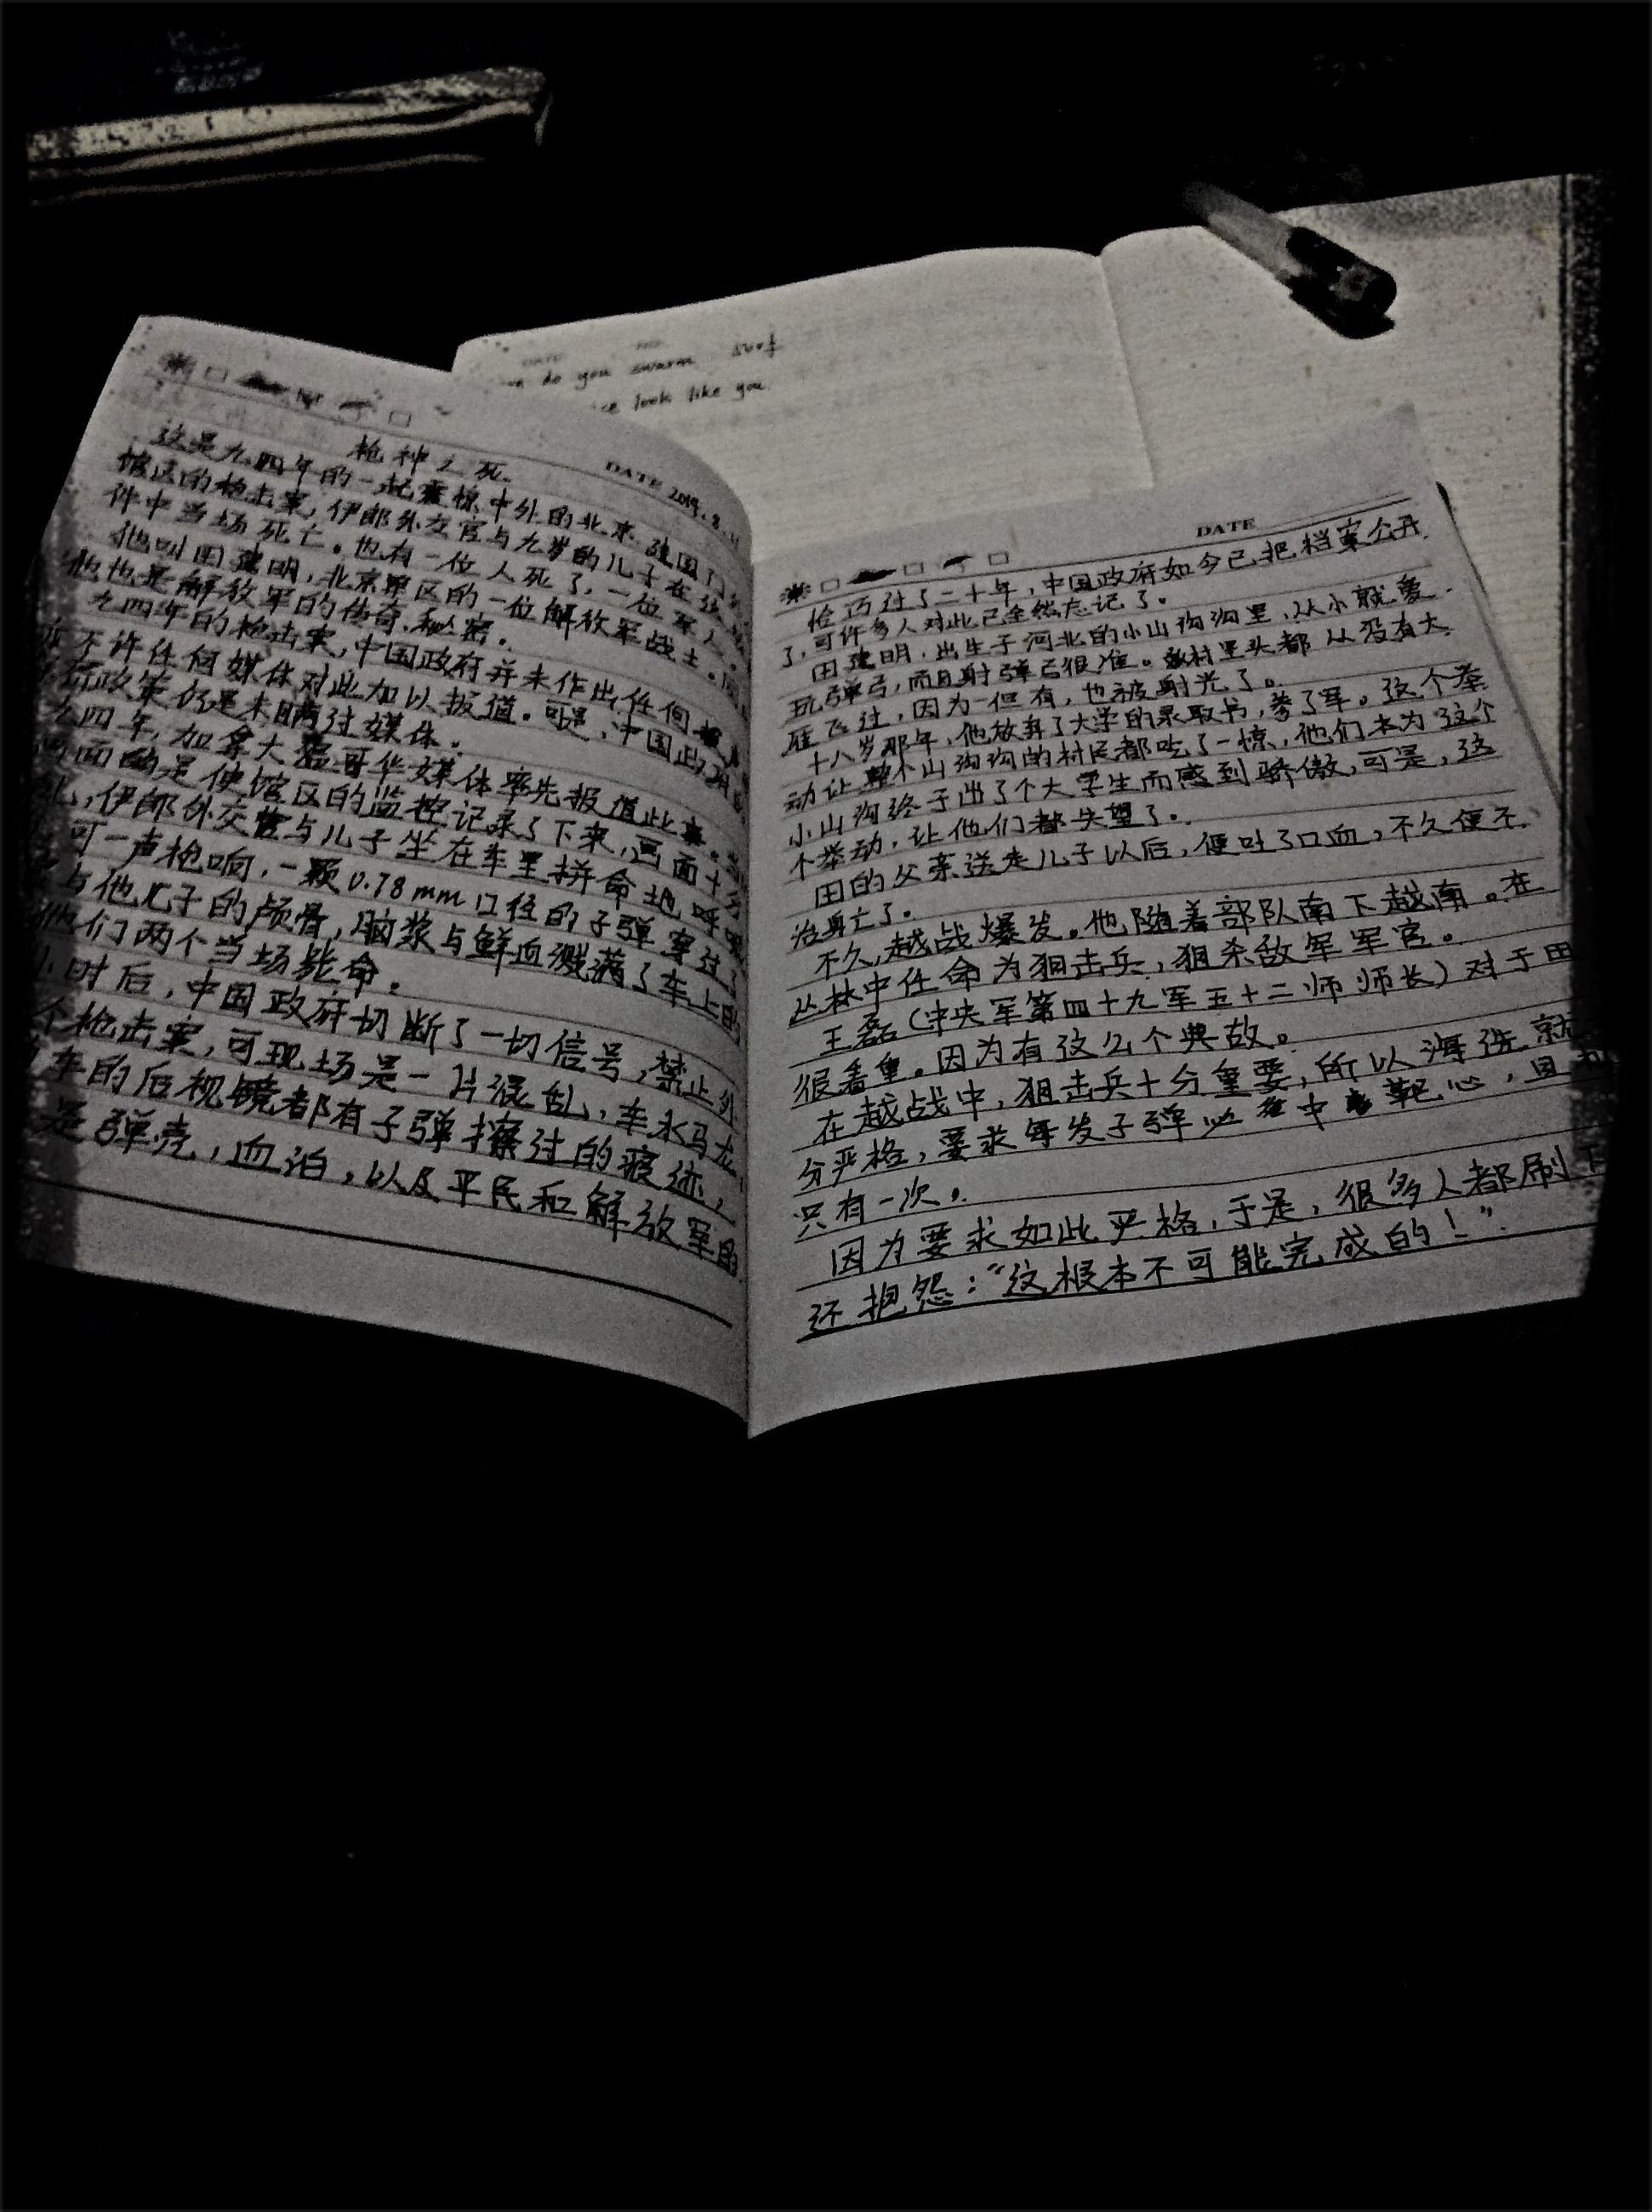 text, indoors, western script, communication, paper, close-up, book, education, high angle view, black background, no people, non-western script, table, dark, still life, number, part of, open, information, studio shot